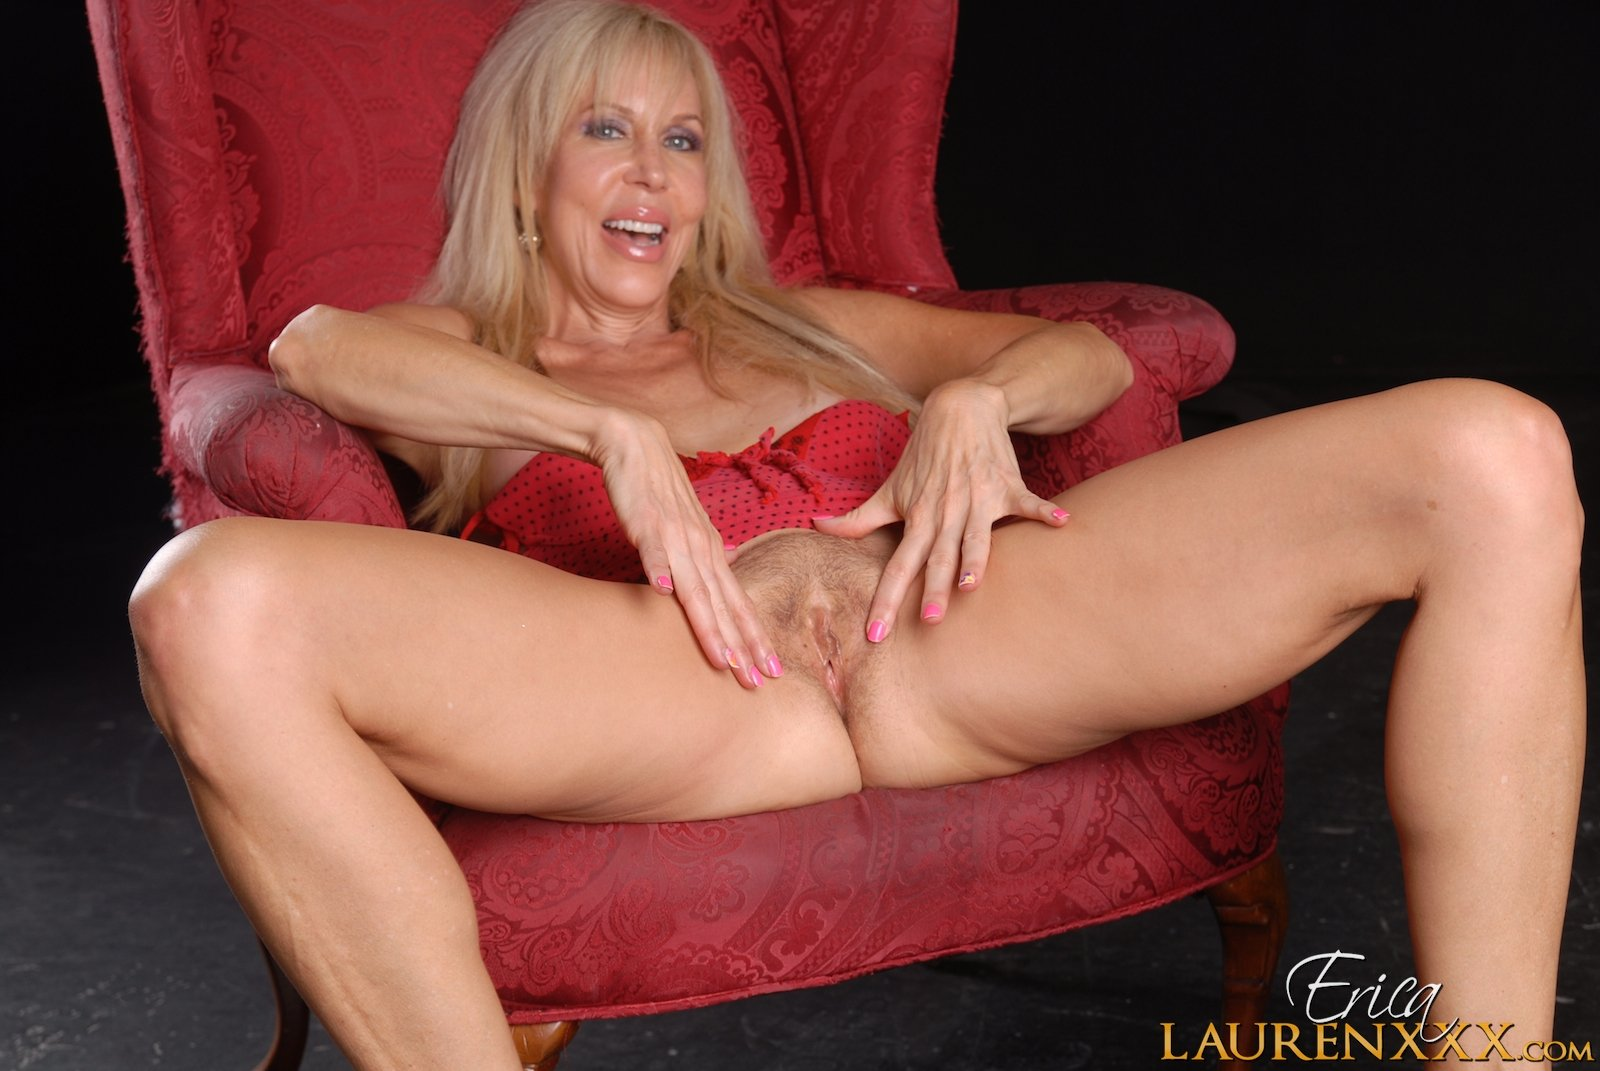 Pictures naked mature women #8